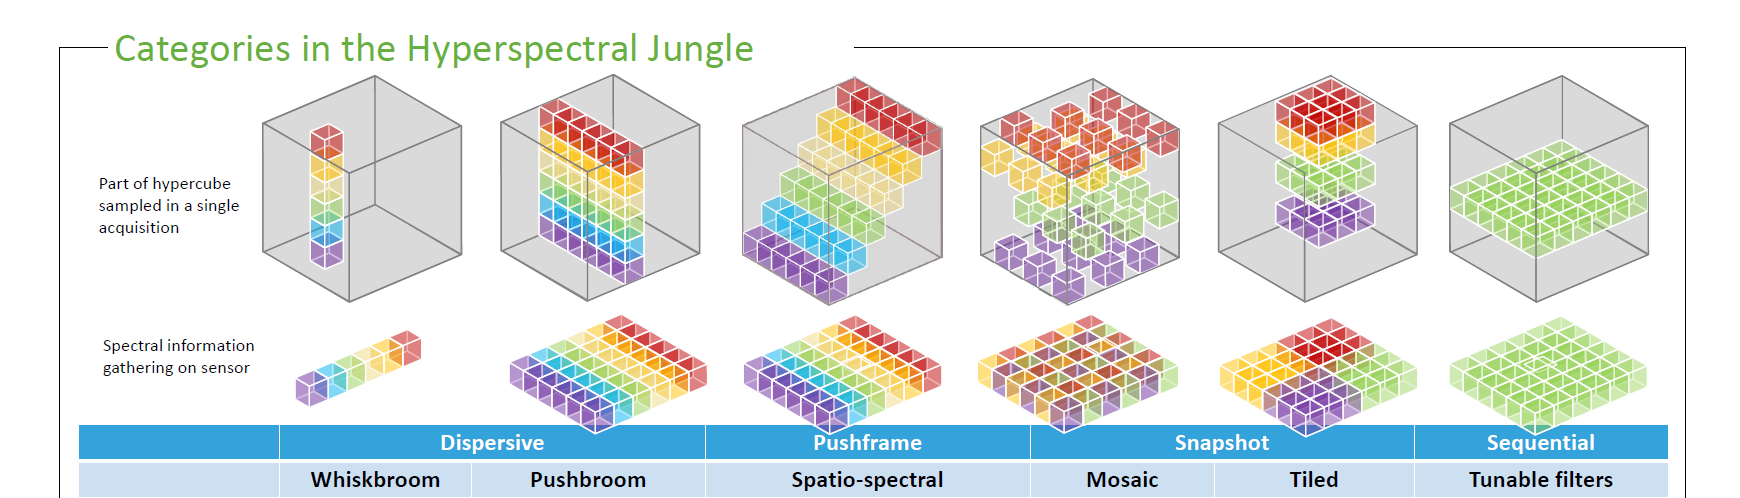 Categories hyperspectral jungle